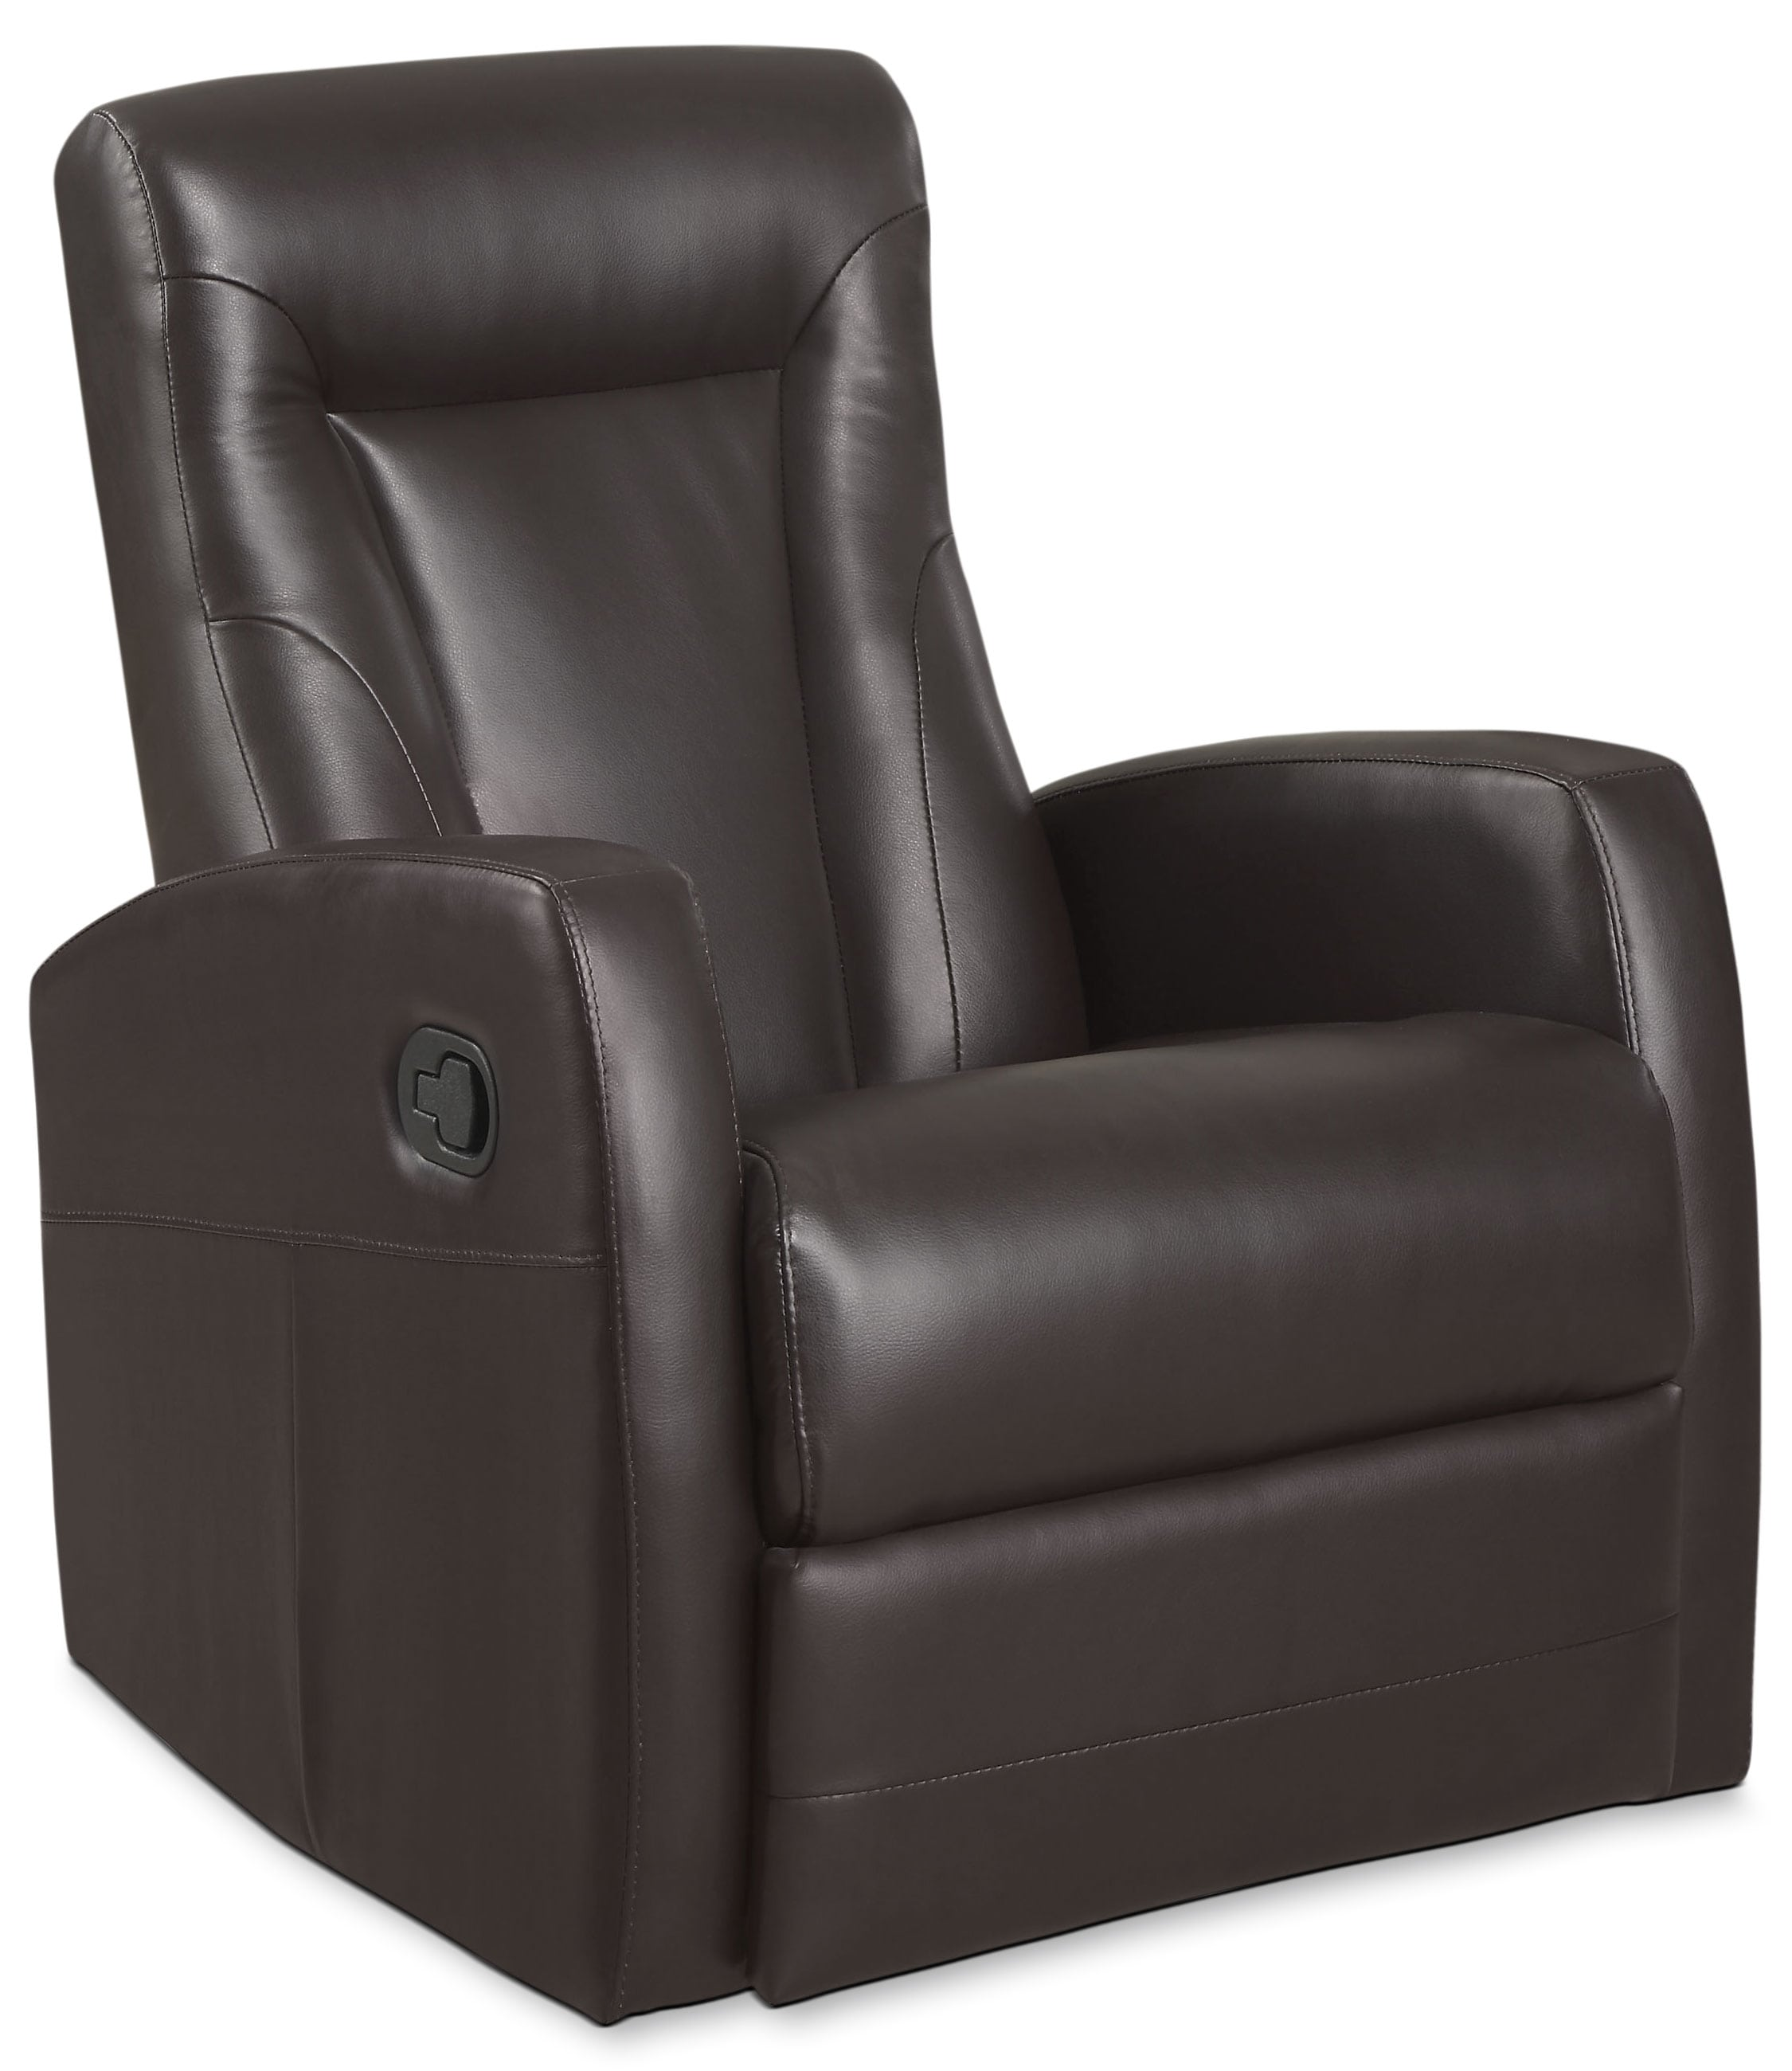 Living Room Furniture - Molly Bonded Leather Swivel Recliner - Brown